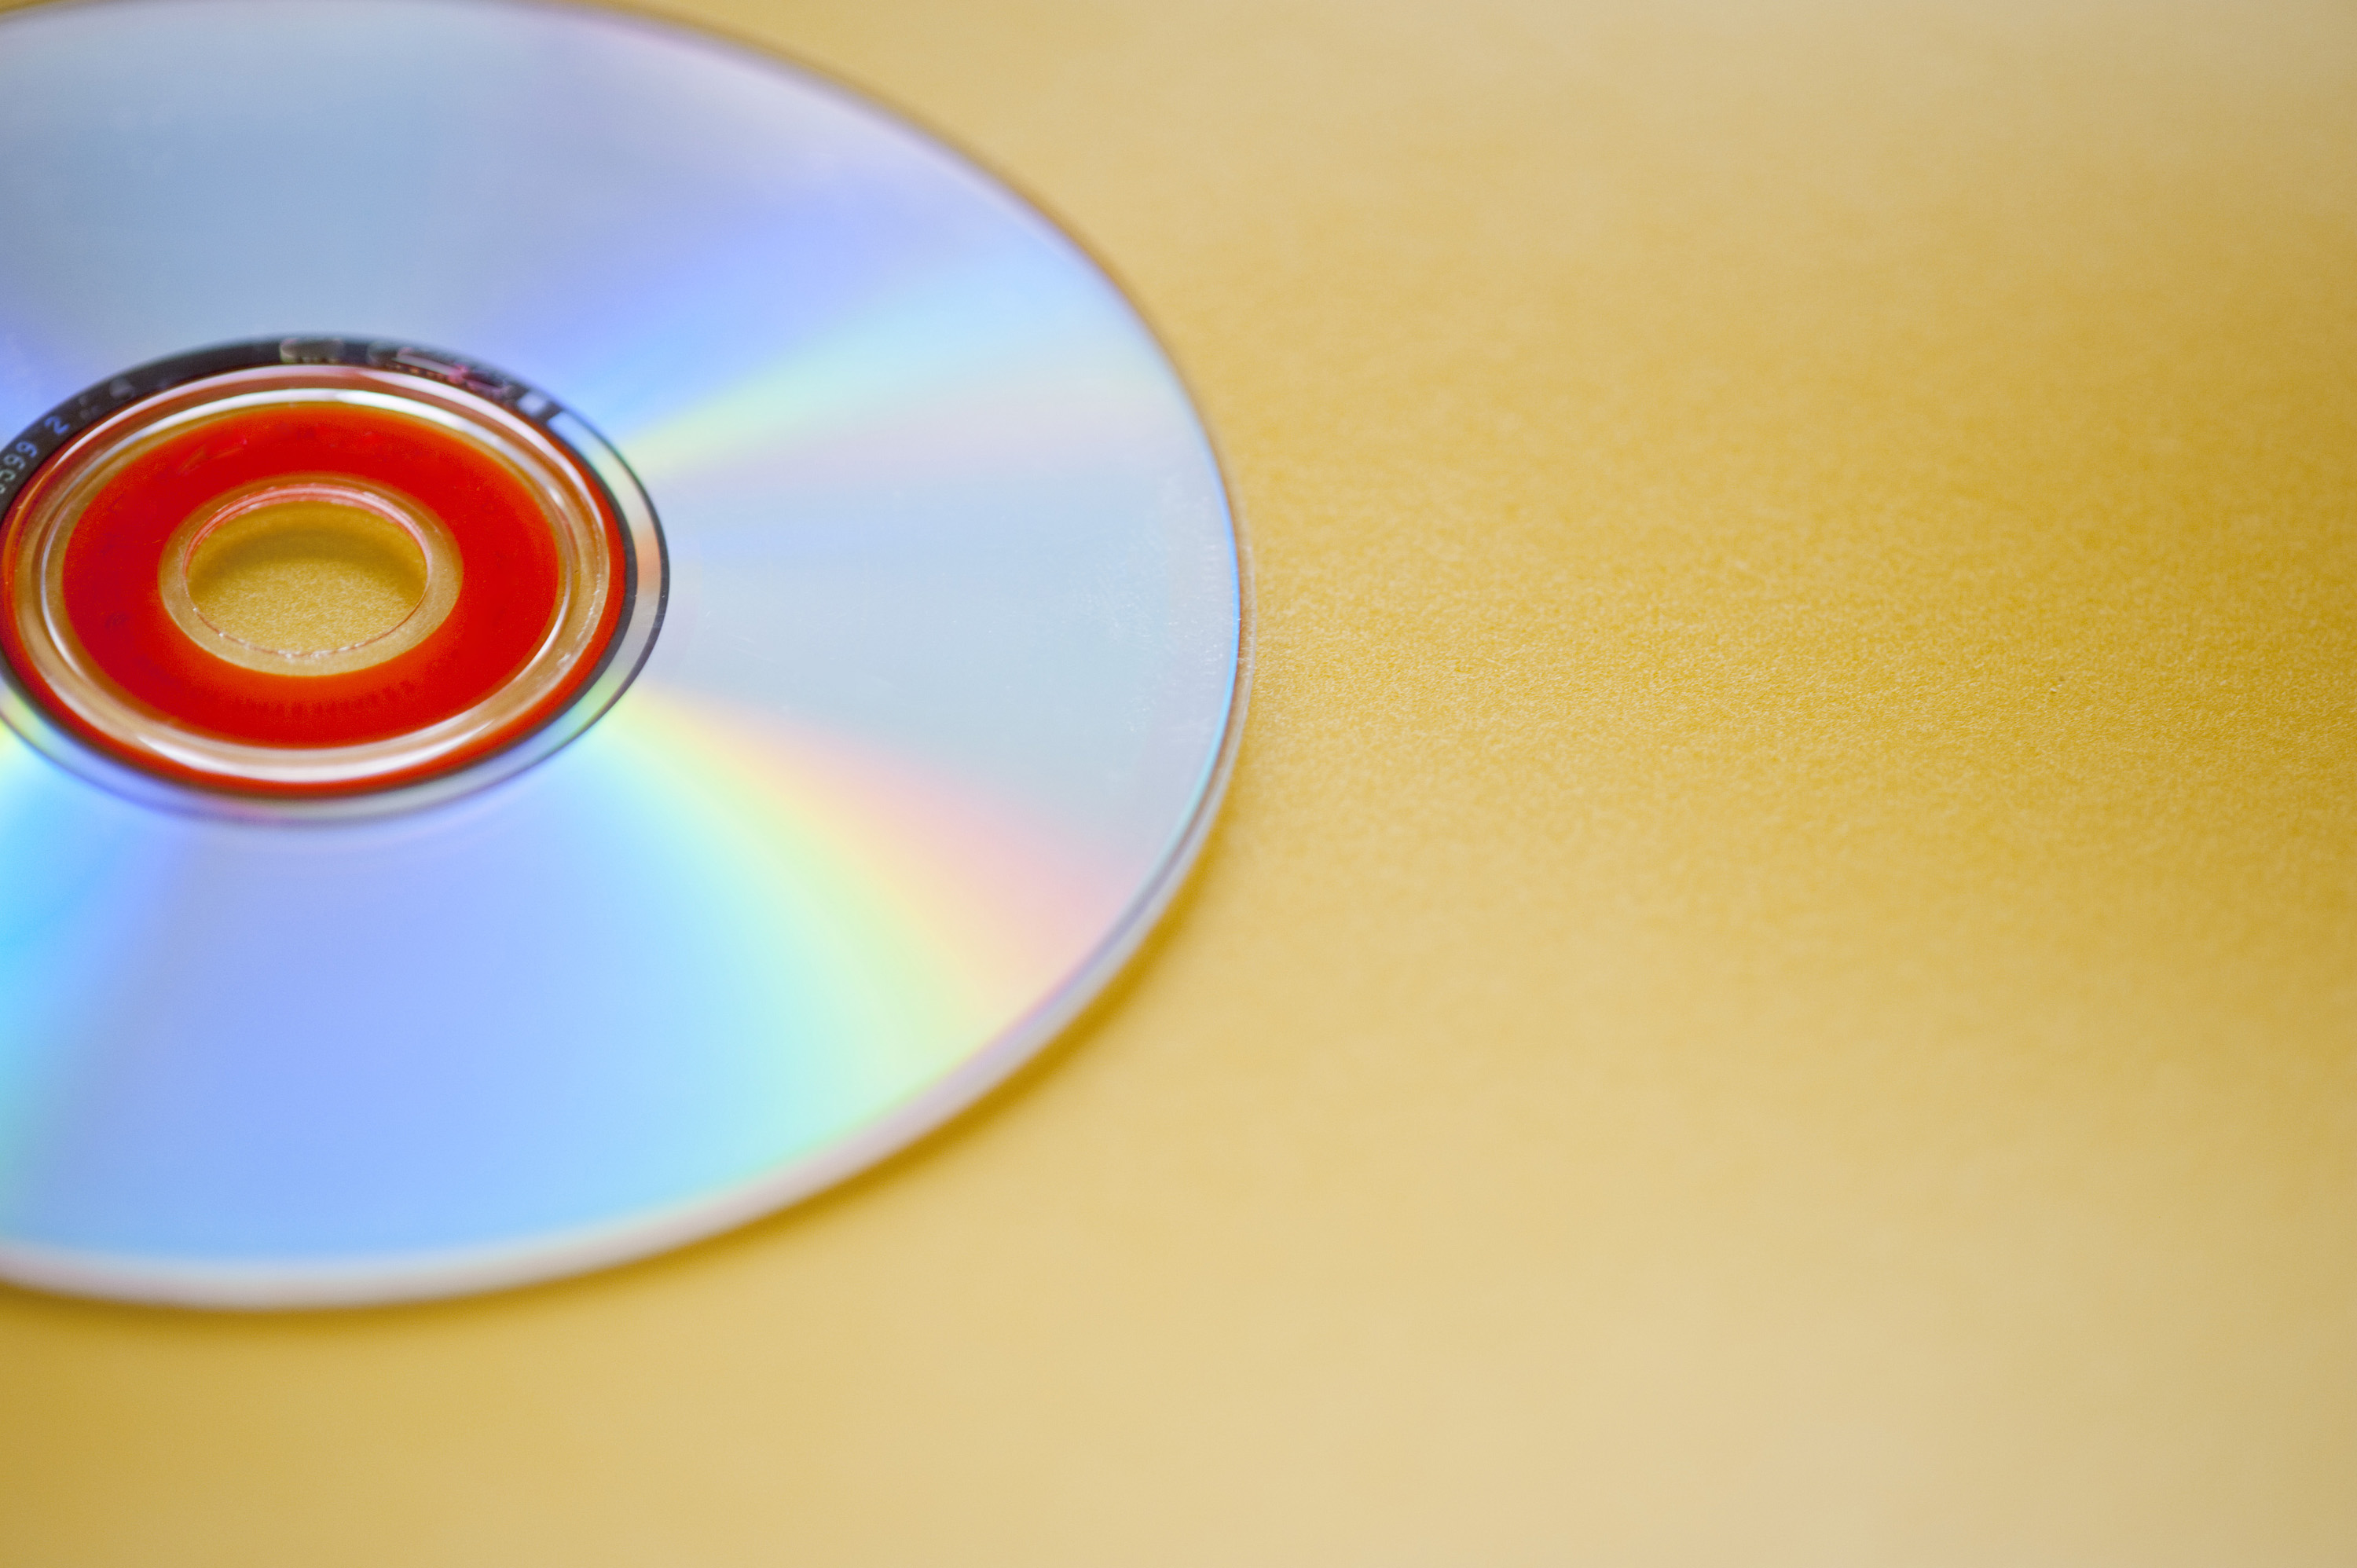 Free Stock Photo 3980 Compactdisc Freeimageslive